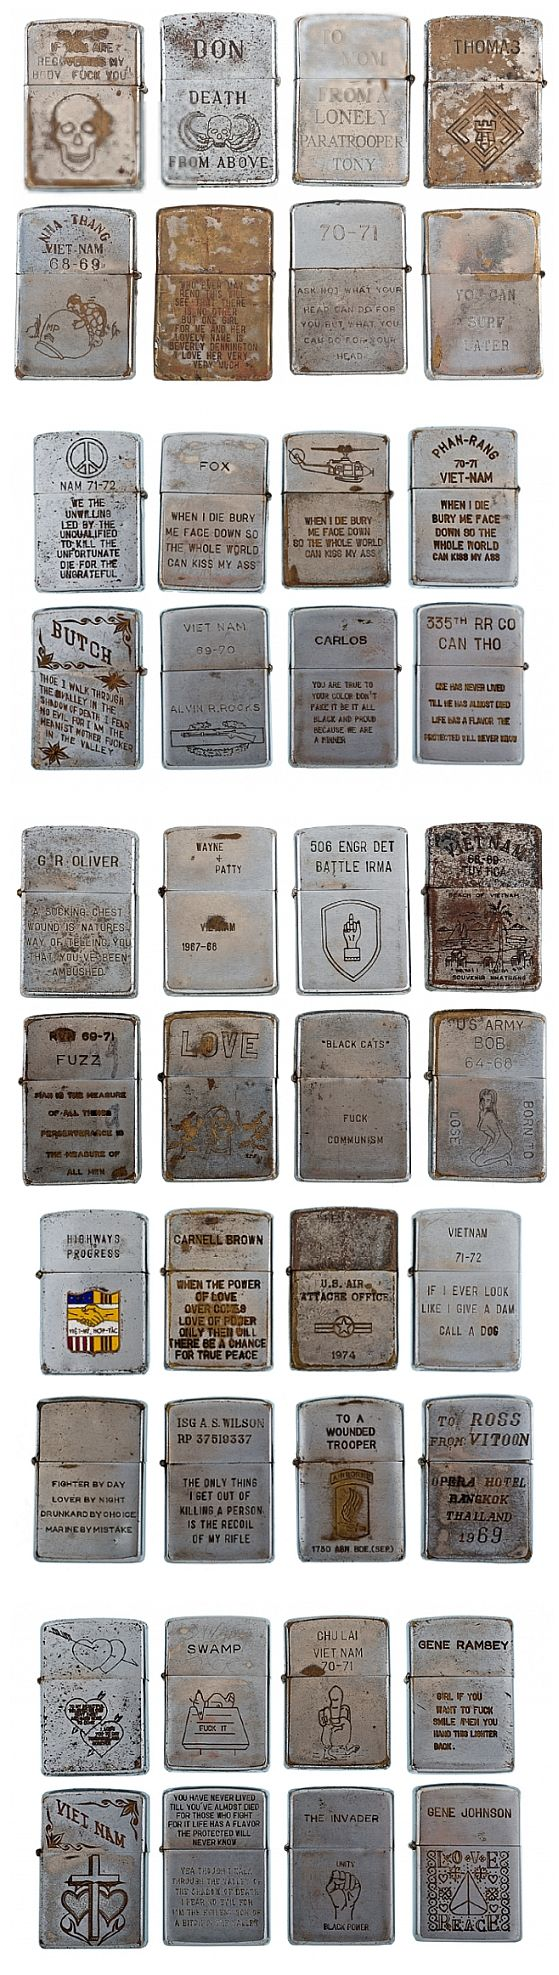 Vintage Vietnam Zippo Lighter Collection - sold at auction for more than 32K… these are an incredible piece of American history. Awesome to read all the engravings.